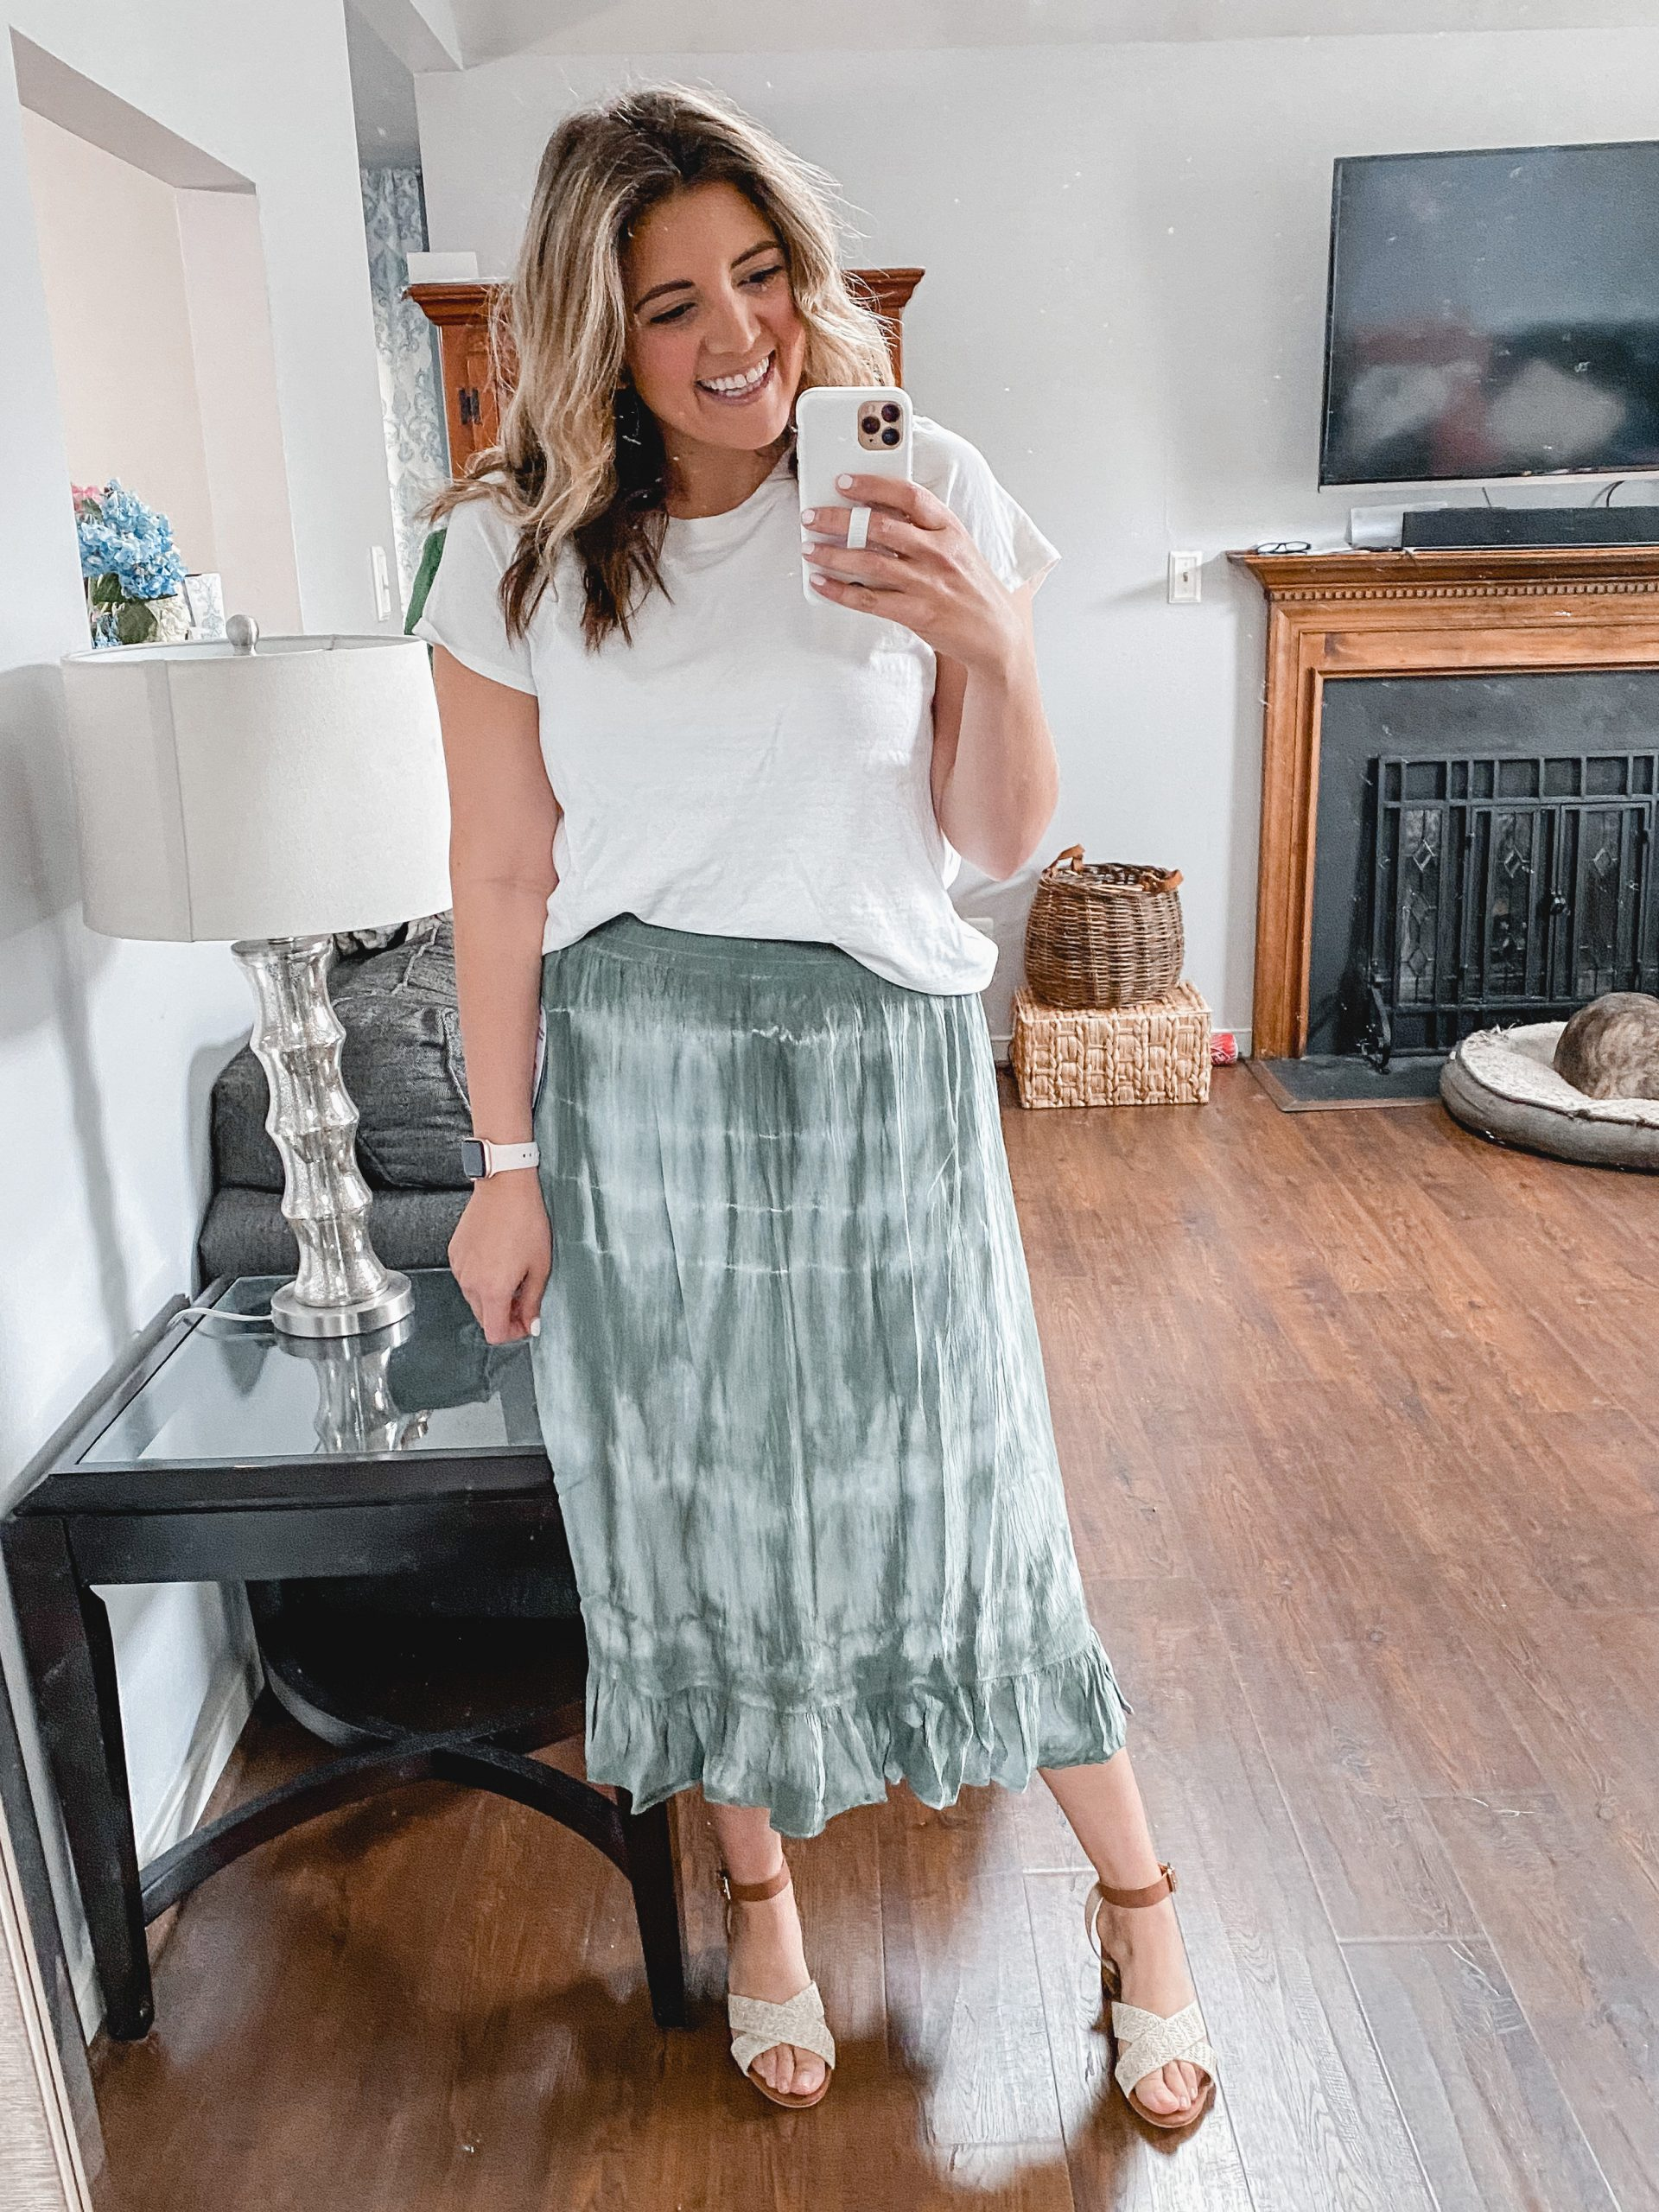 Virginia blogger, Lauren Dix, shares over 10 new Walmart fashion finds for spring and summer in her latest Walmart try on!